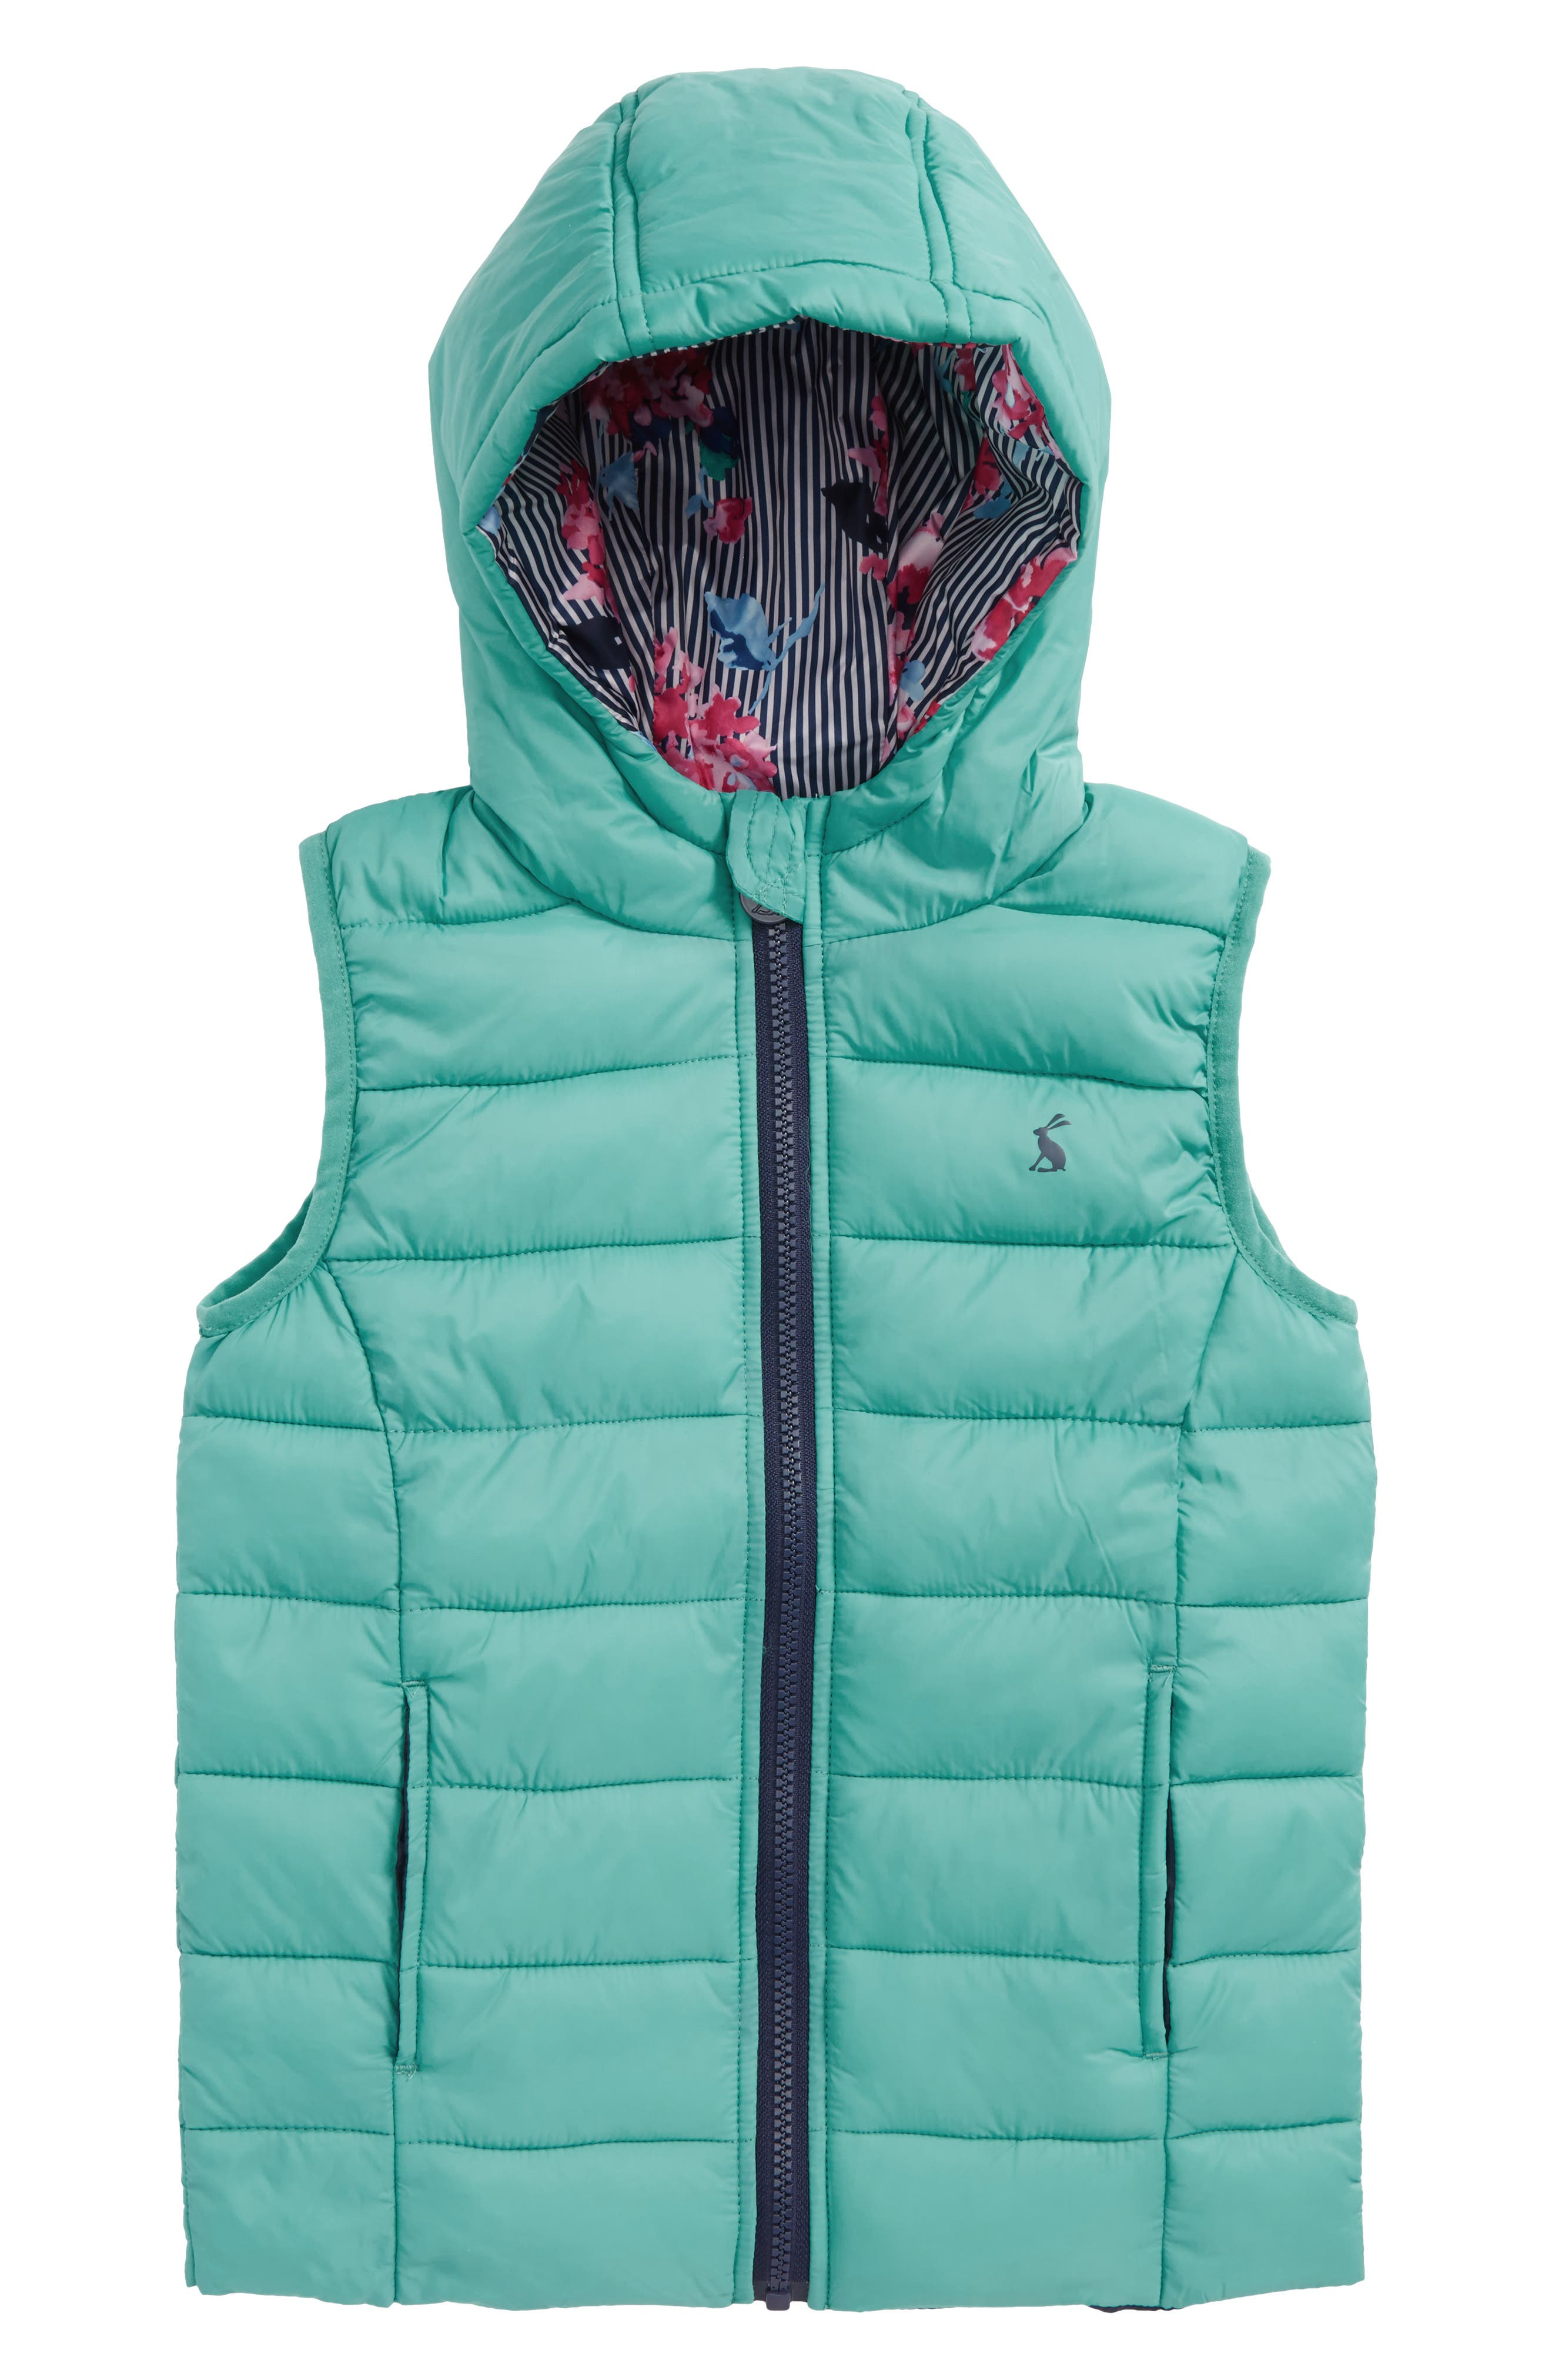 Printed Packaway Vest,                         Main,                         color, Cool Green